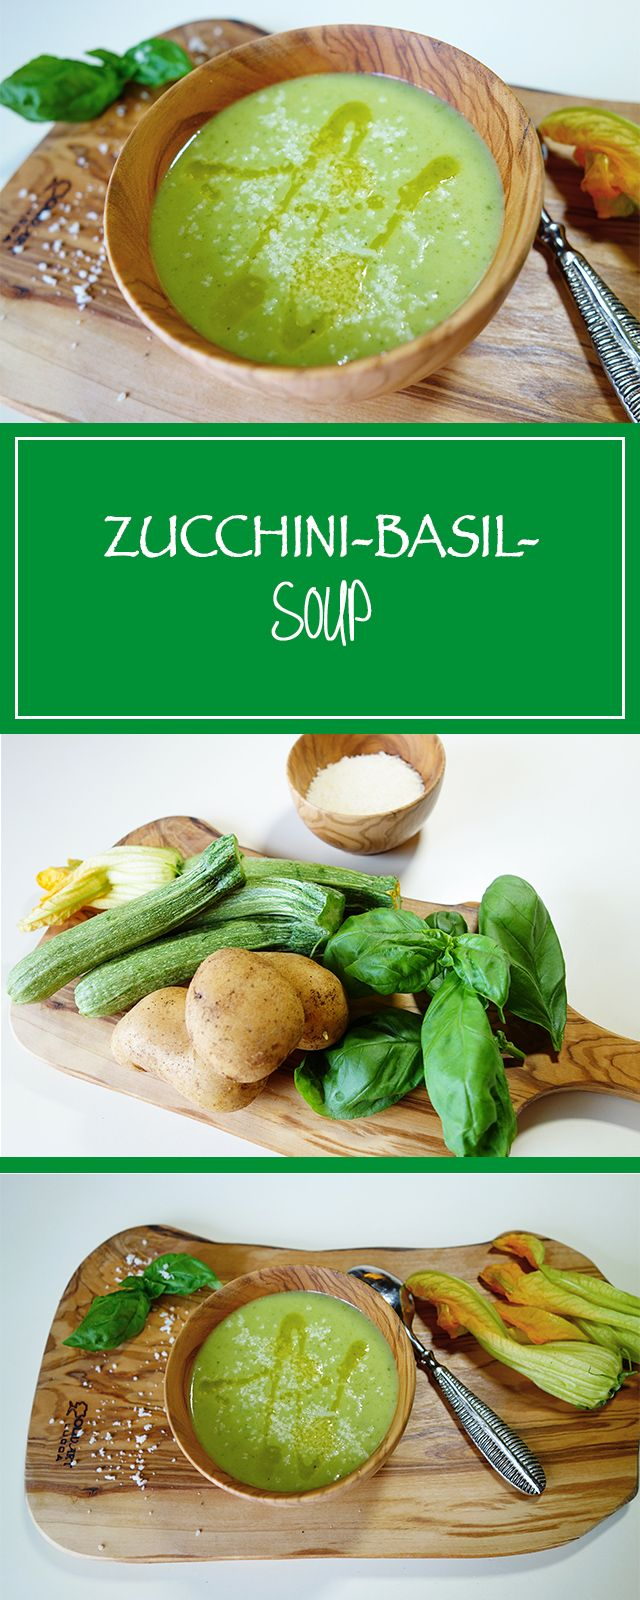 Zucchini-basil-soup - summer & soup are a perfect fit, as also this gluten-free, vegetarian & simple recipe prooves. Delicious! 🌞🍽 | cucina-con-amore.com